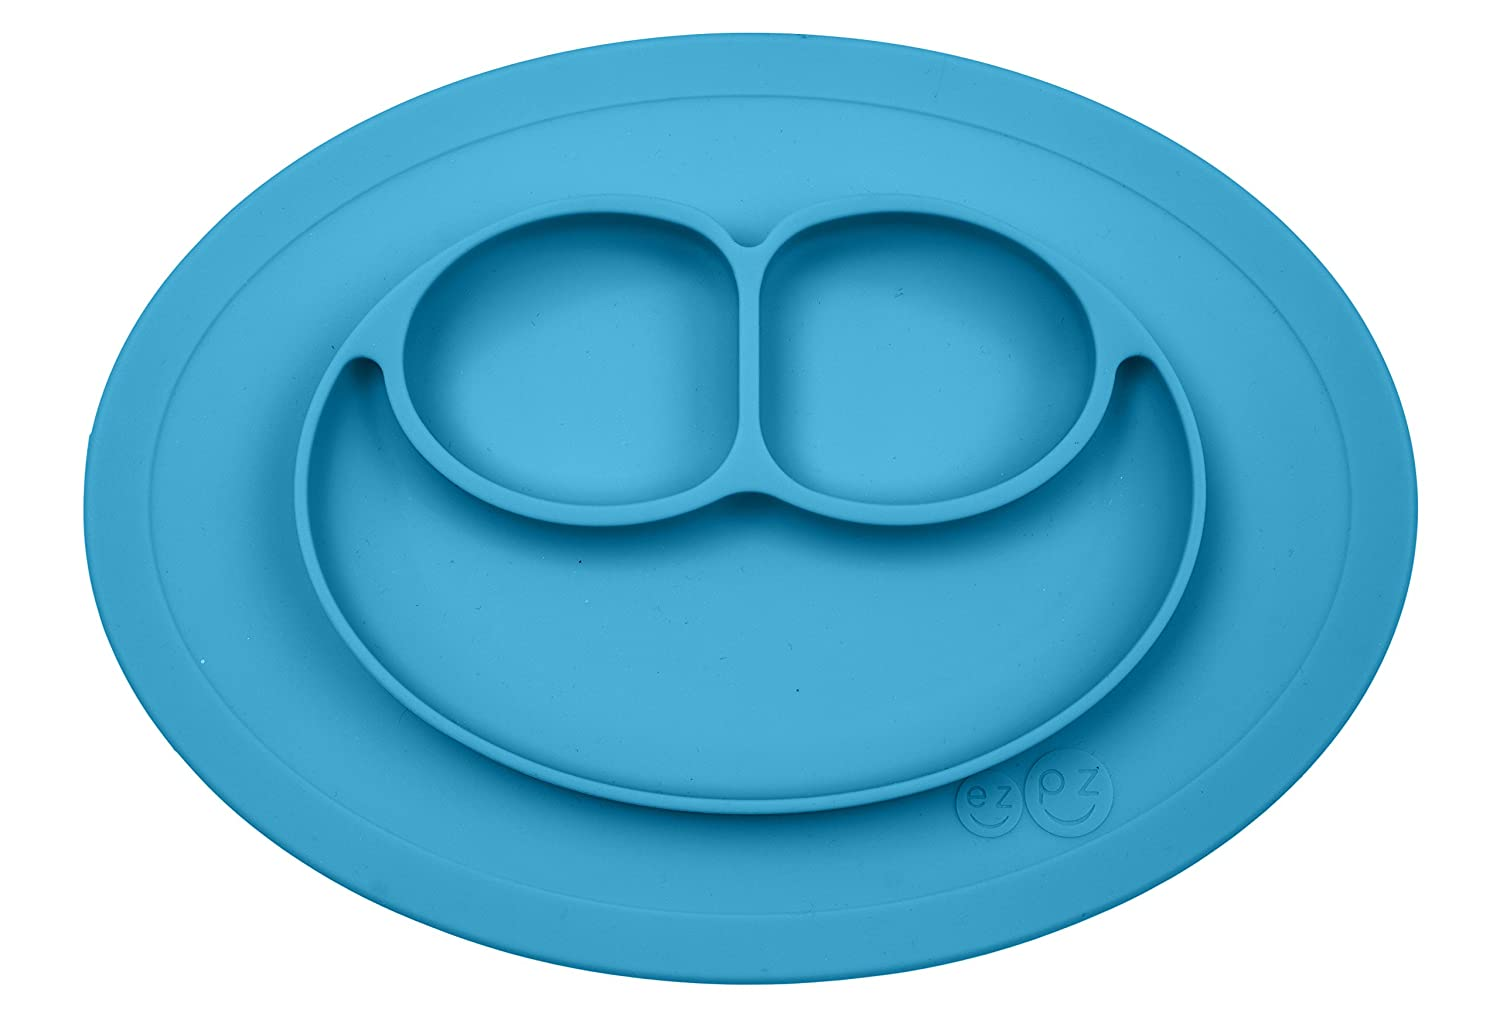 Amazon.com : ezpz Mini Mat - One-piece silicone placemat + plate ...